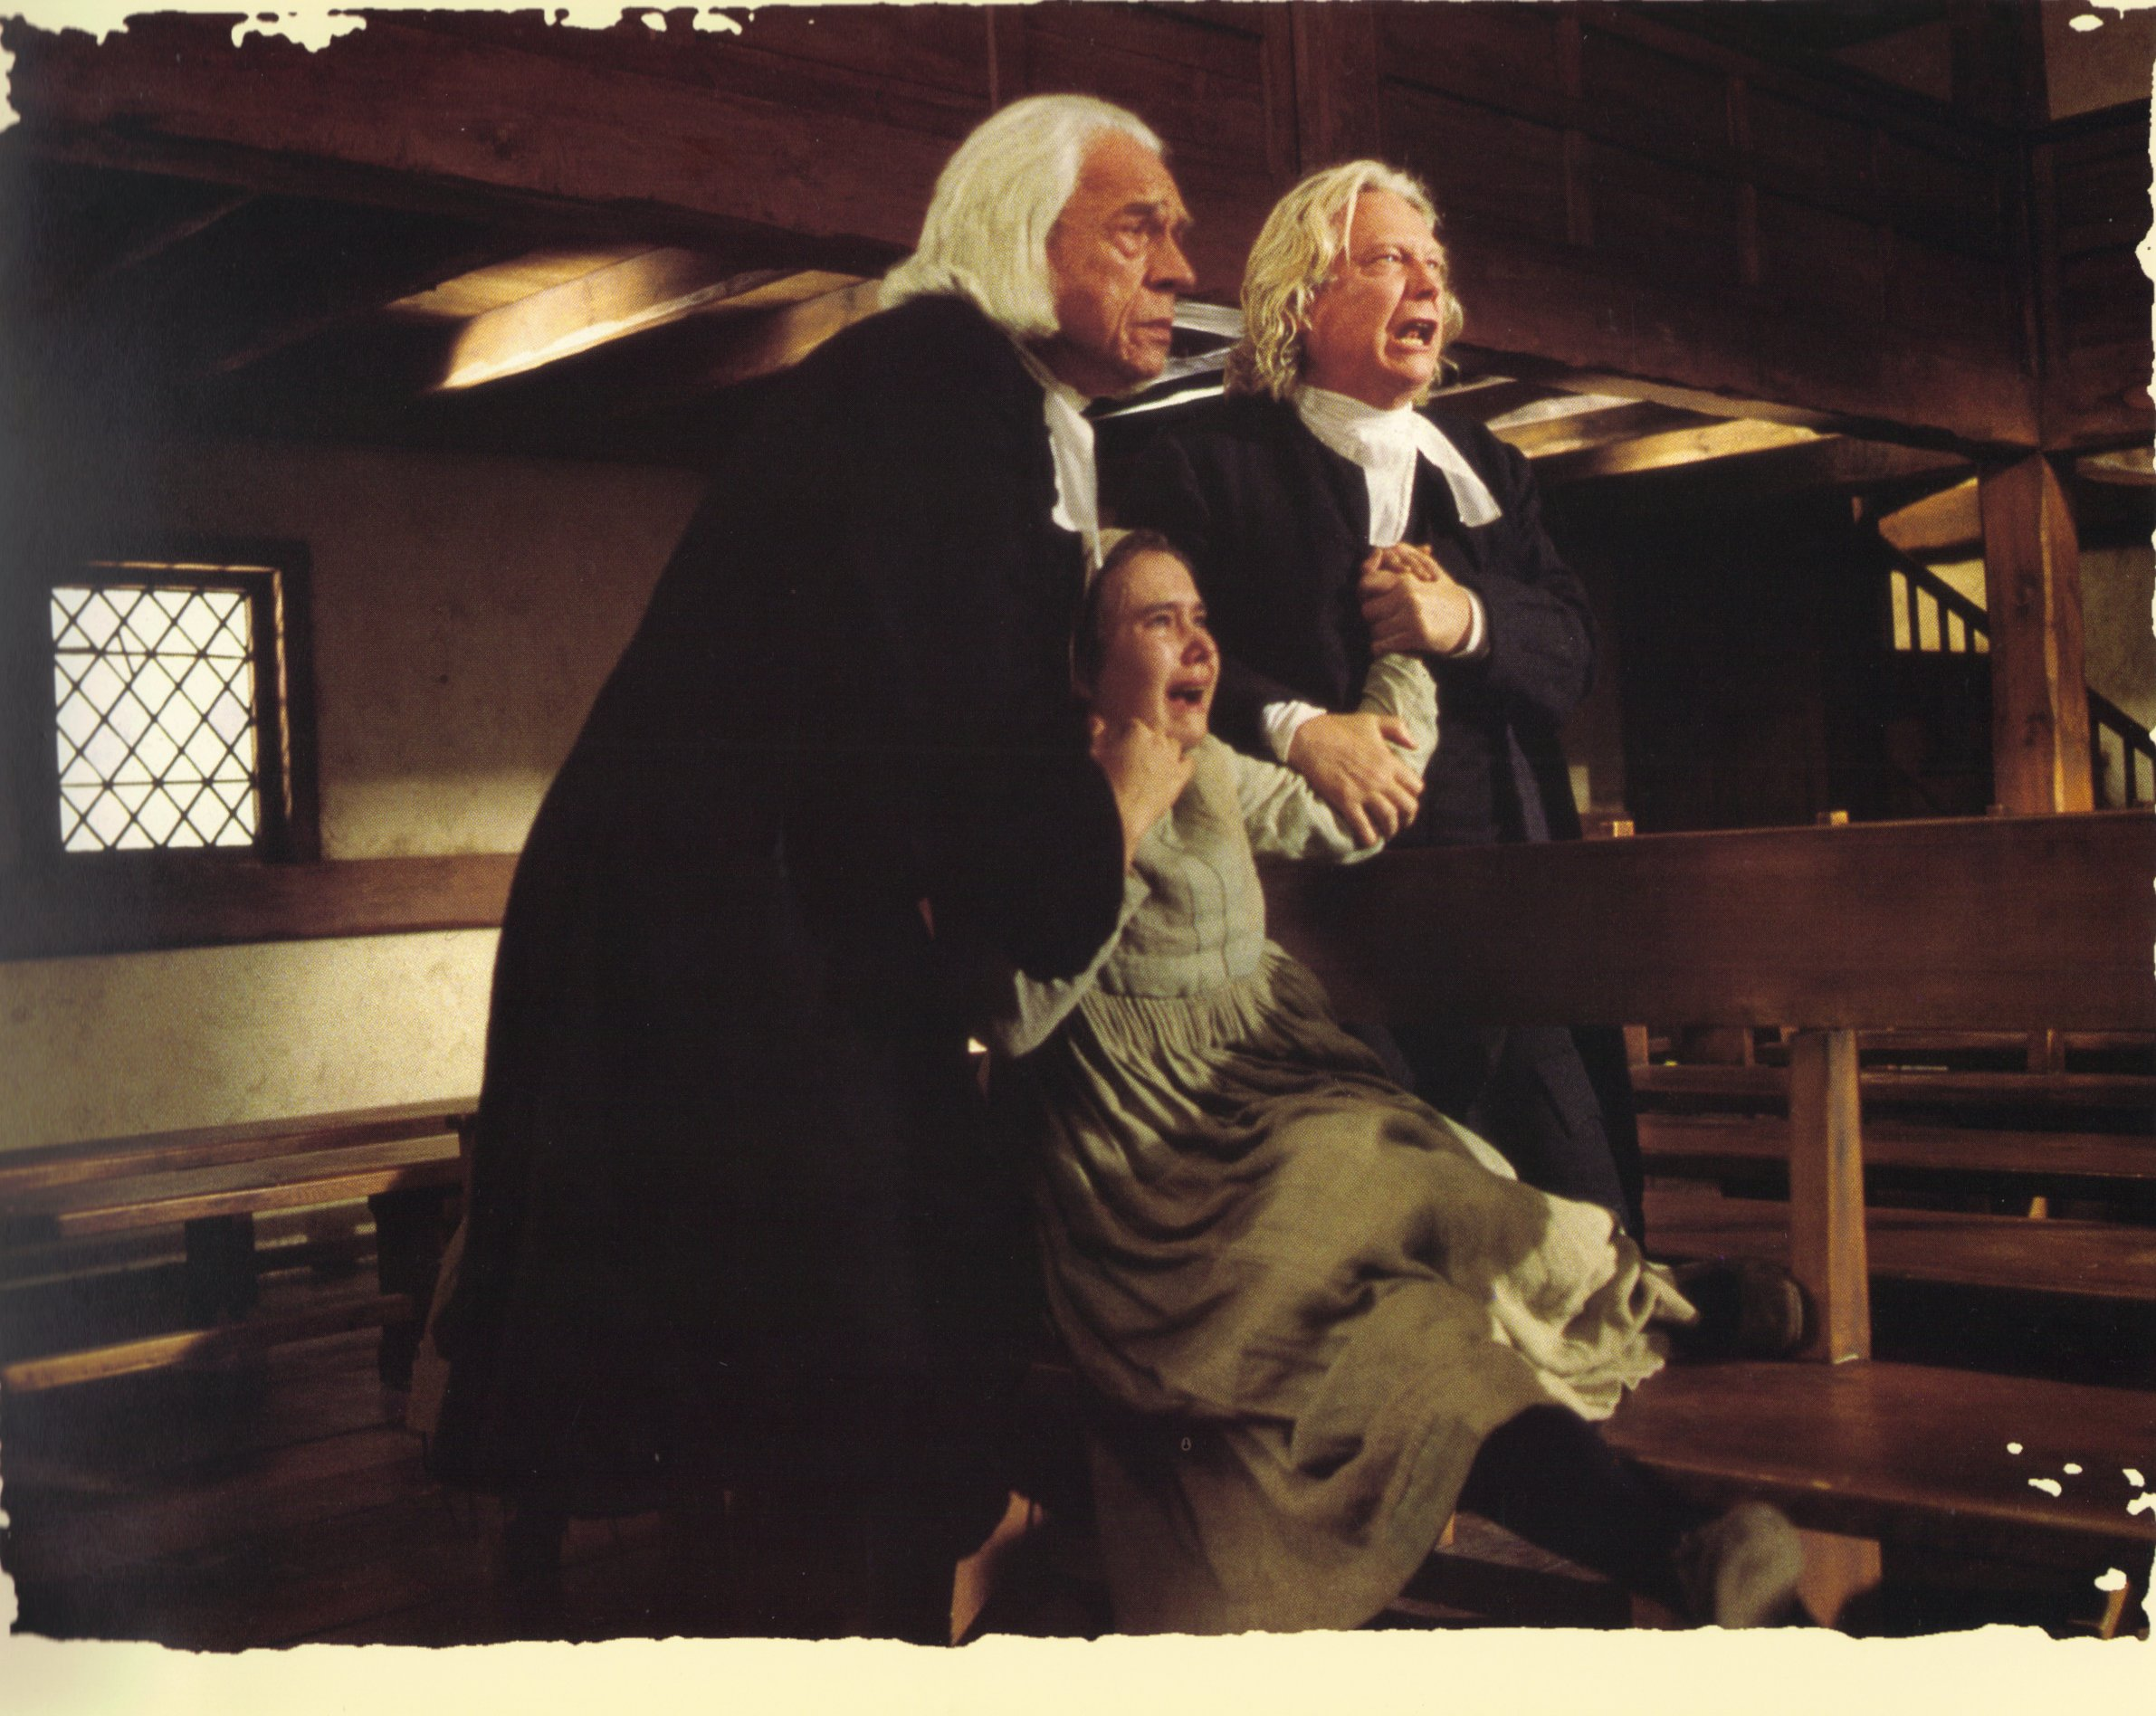 the crucible grudges and personal rivalries What are three grudges/personal rivalries which play a role in the witch trail hysteria  grudges mil let's novel the crucible looks at another time in.